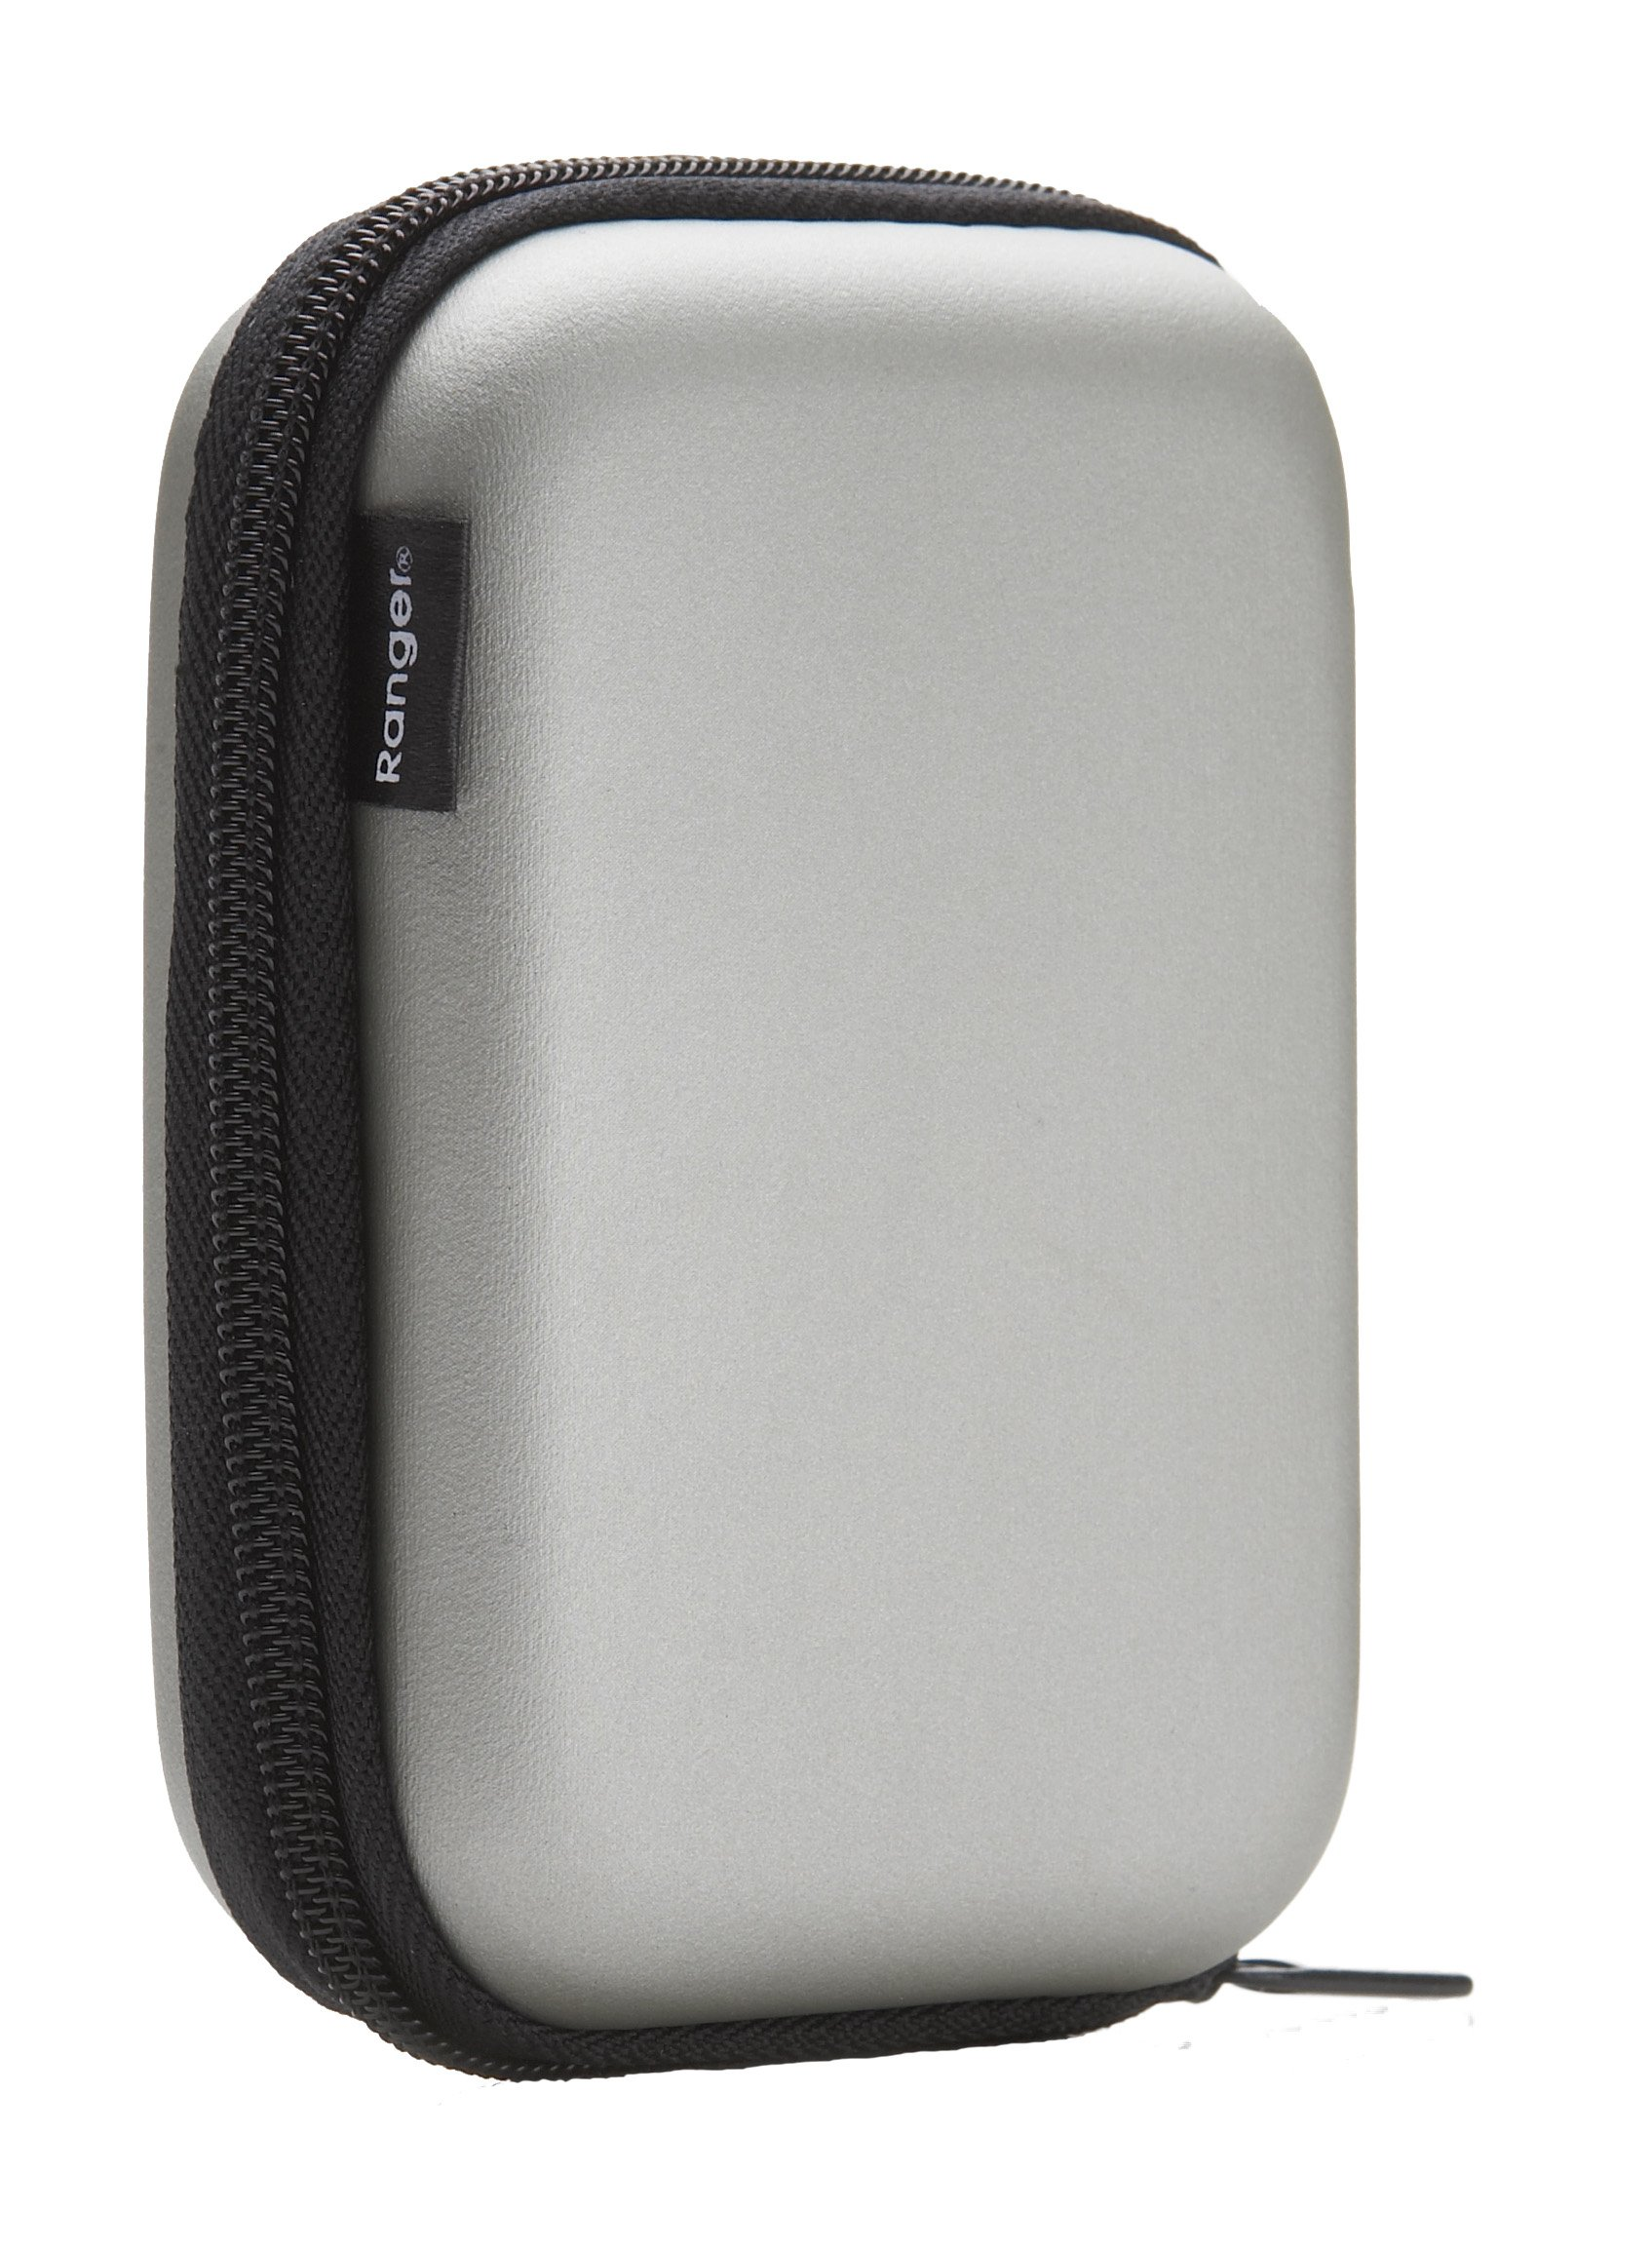 Cygnett R-C-HSCS Explorer Hard Shell Case for Camera, GPS, PDAs and MP3 Players (Silver) by Swann